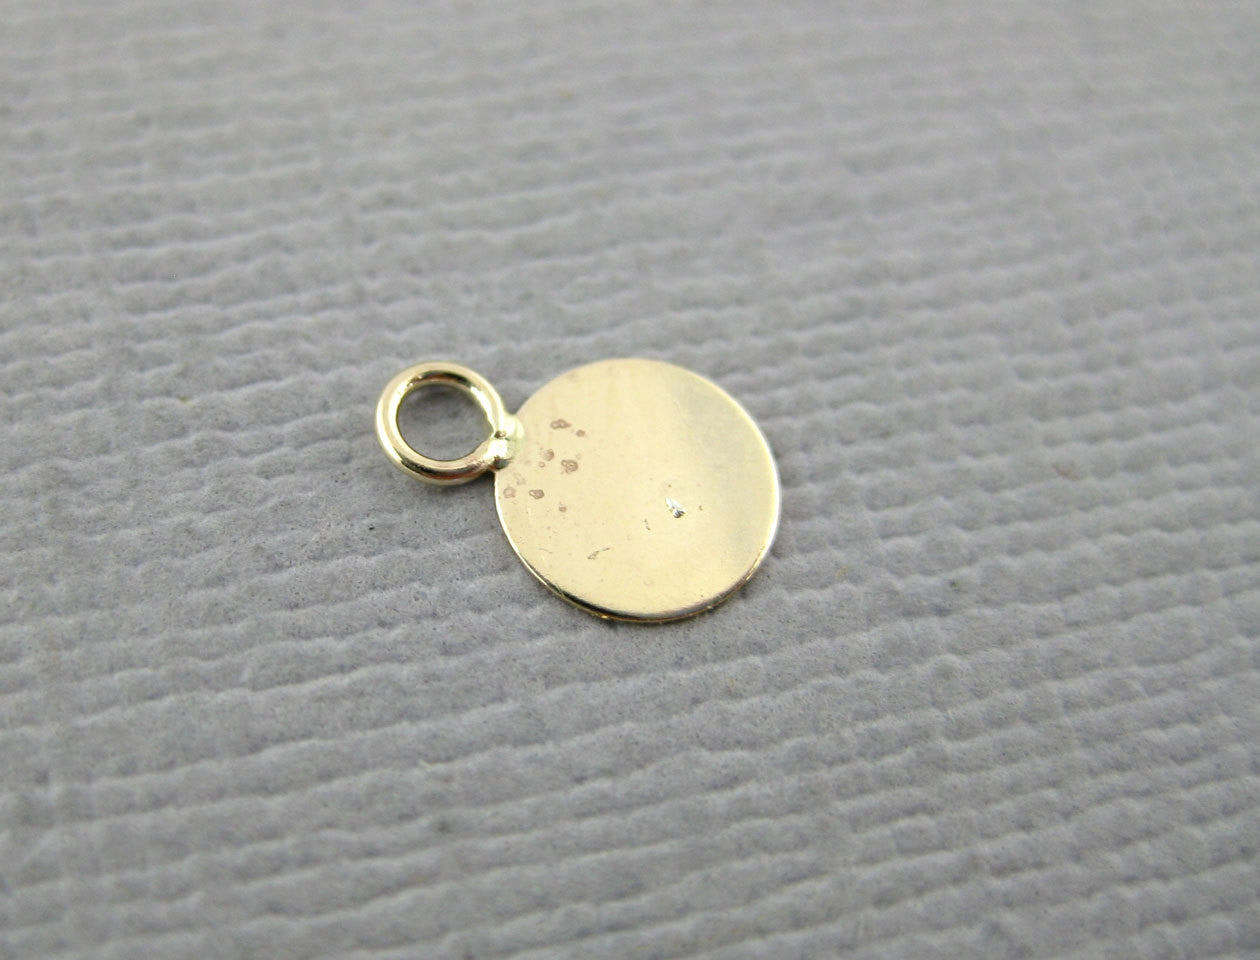 Gold Filled Charm-- Tiny 5mm Gold Filled Flat Round Charm-- 2 CHARMS  (CN-03)